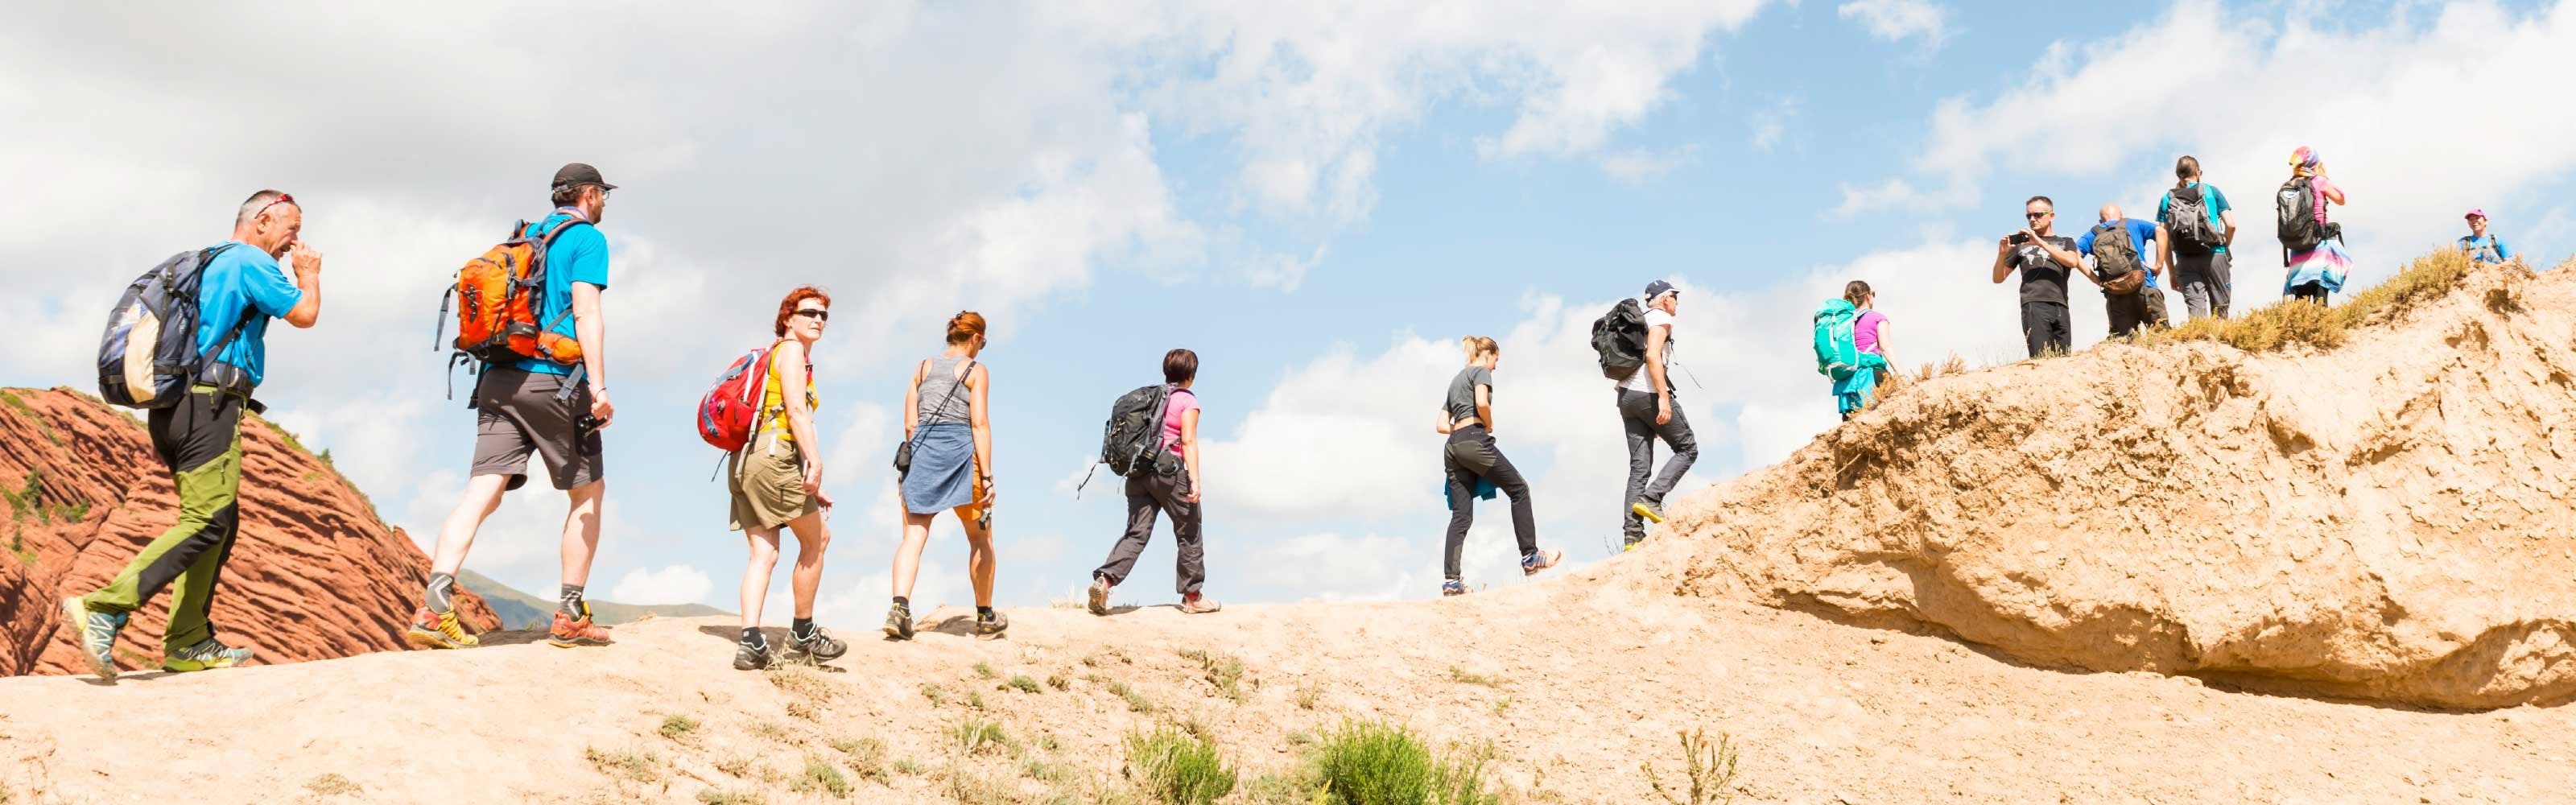 Thirteen hikers wearing backpacks and walking along a ridge